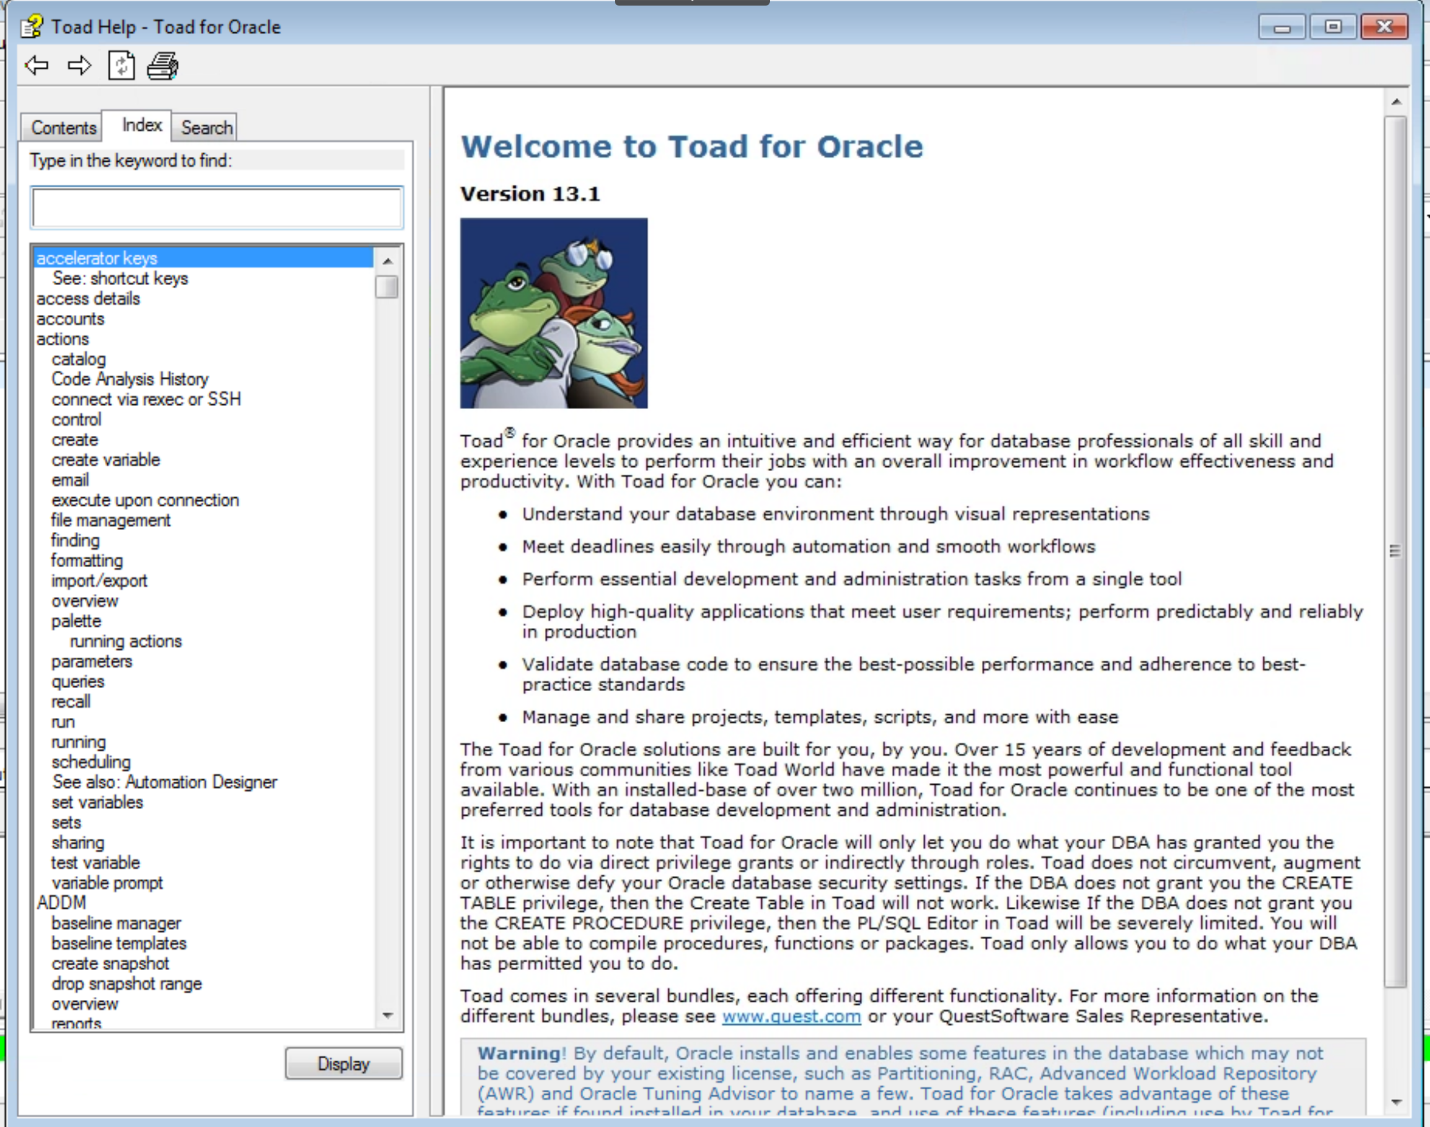 Figure 4. The Toad for Oracle Help Index tab